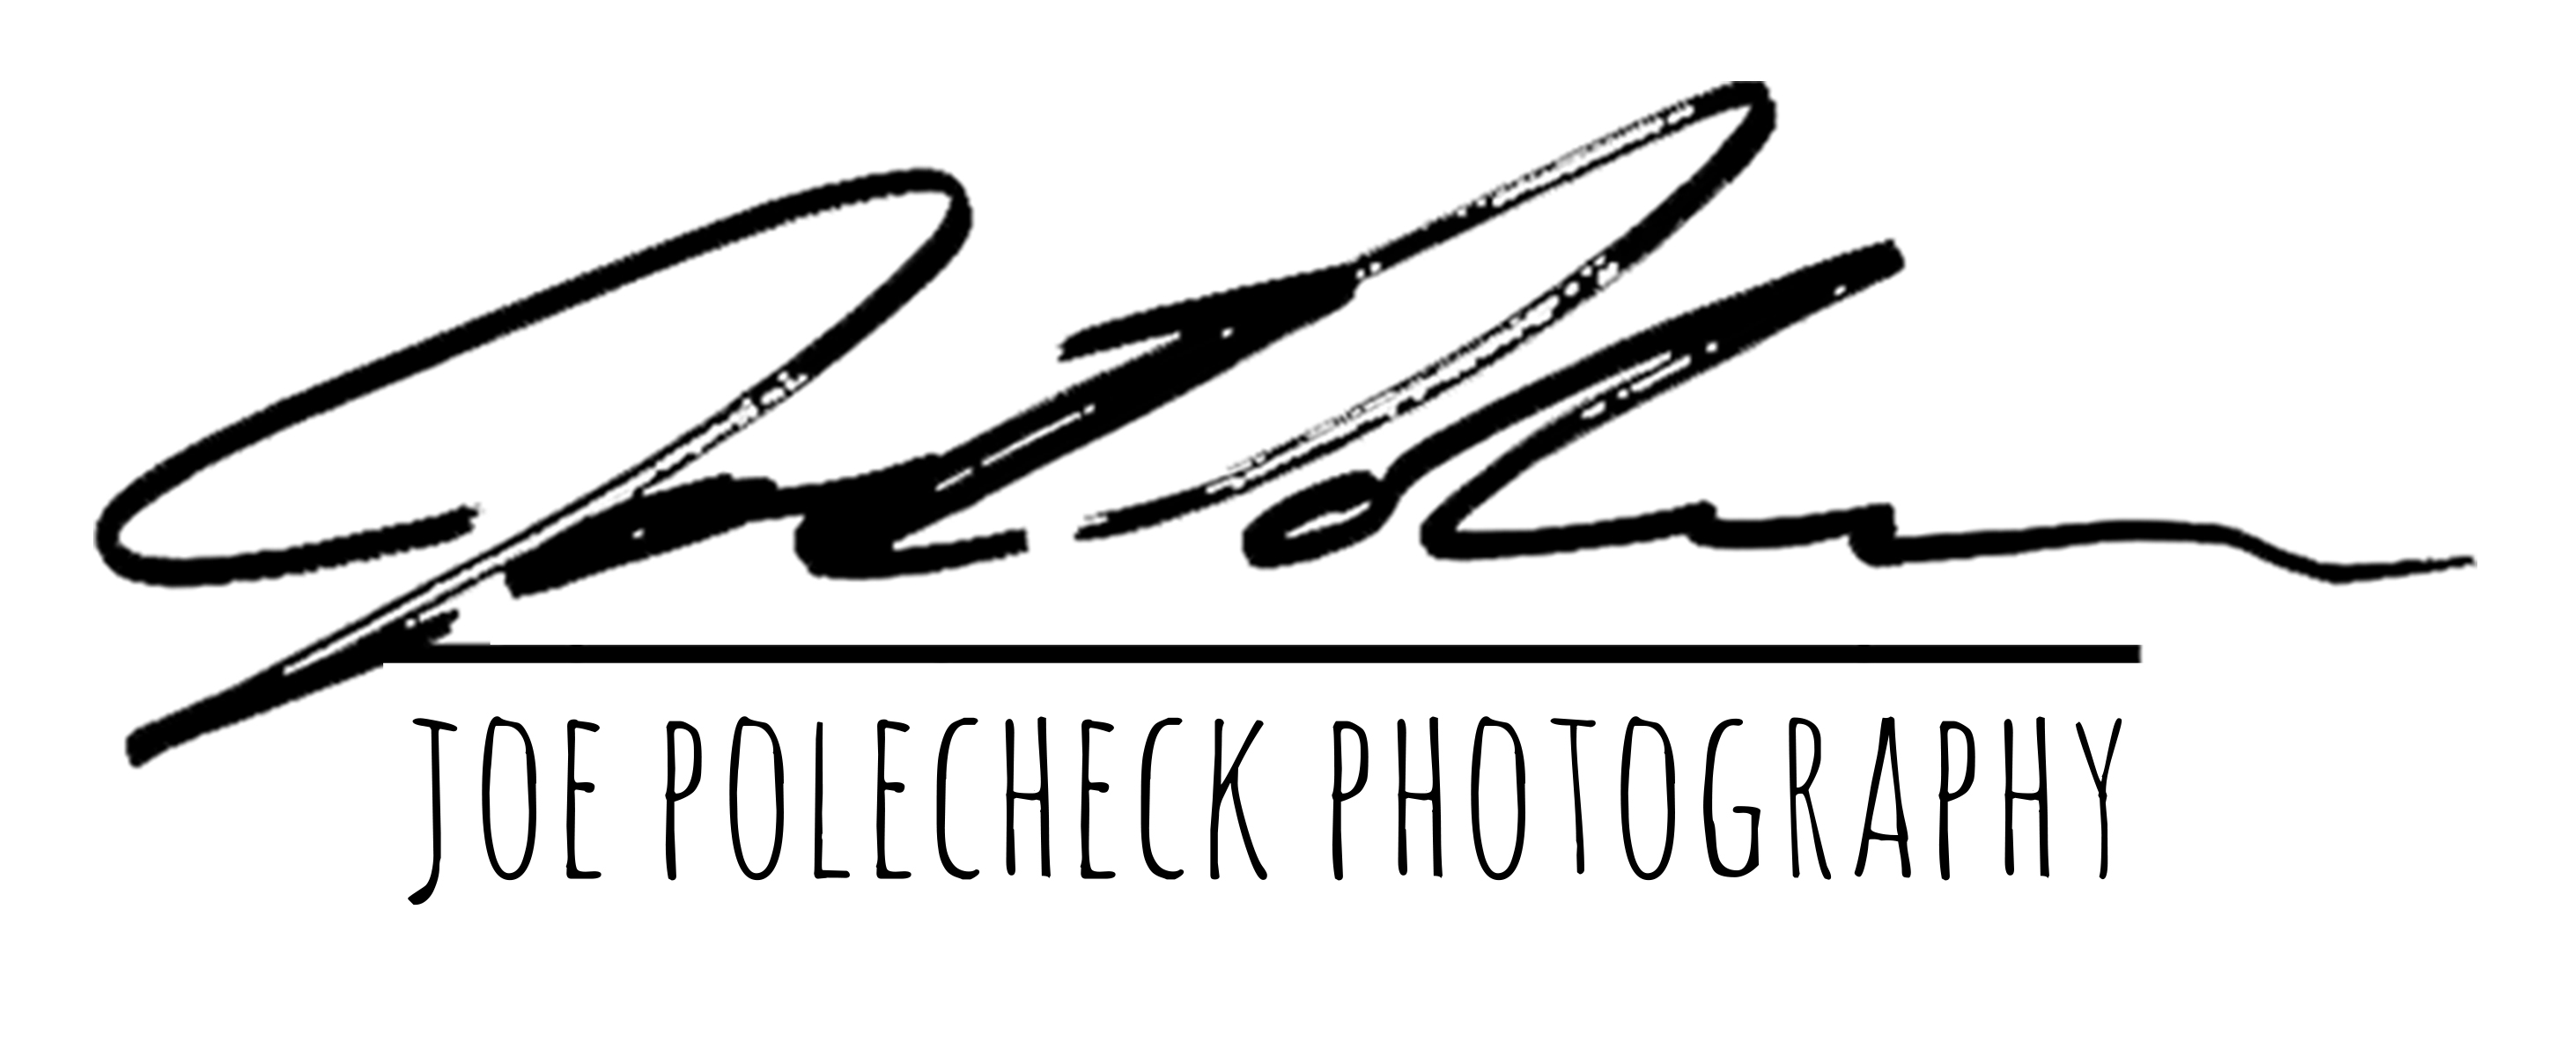 /Joe%20Polecheck%20Photography